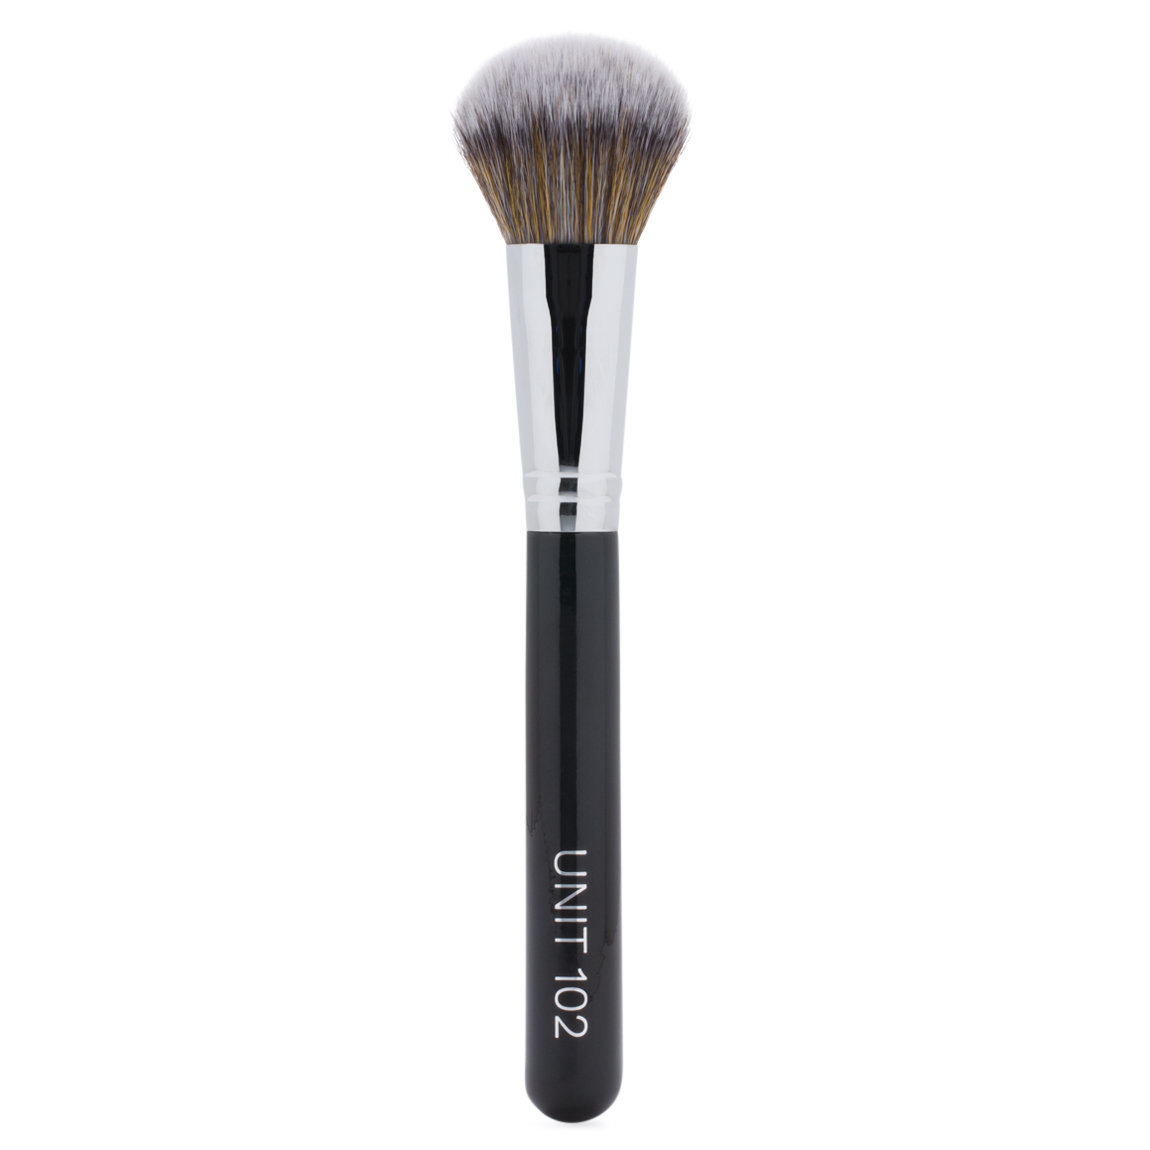 UNITS UNIT 102 Foundation Brush alternative view 1 - product swatch.